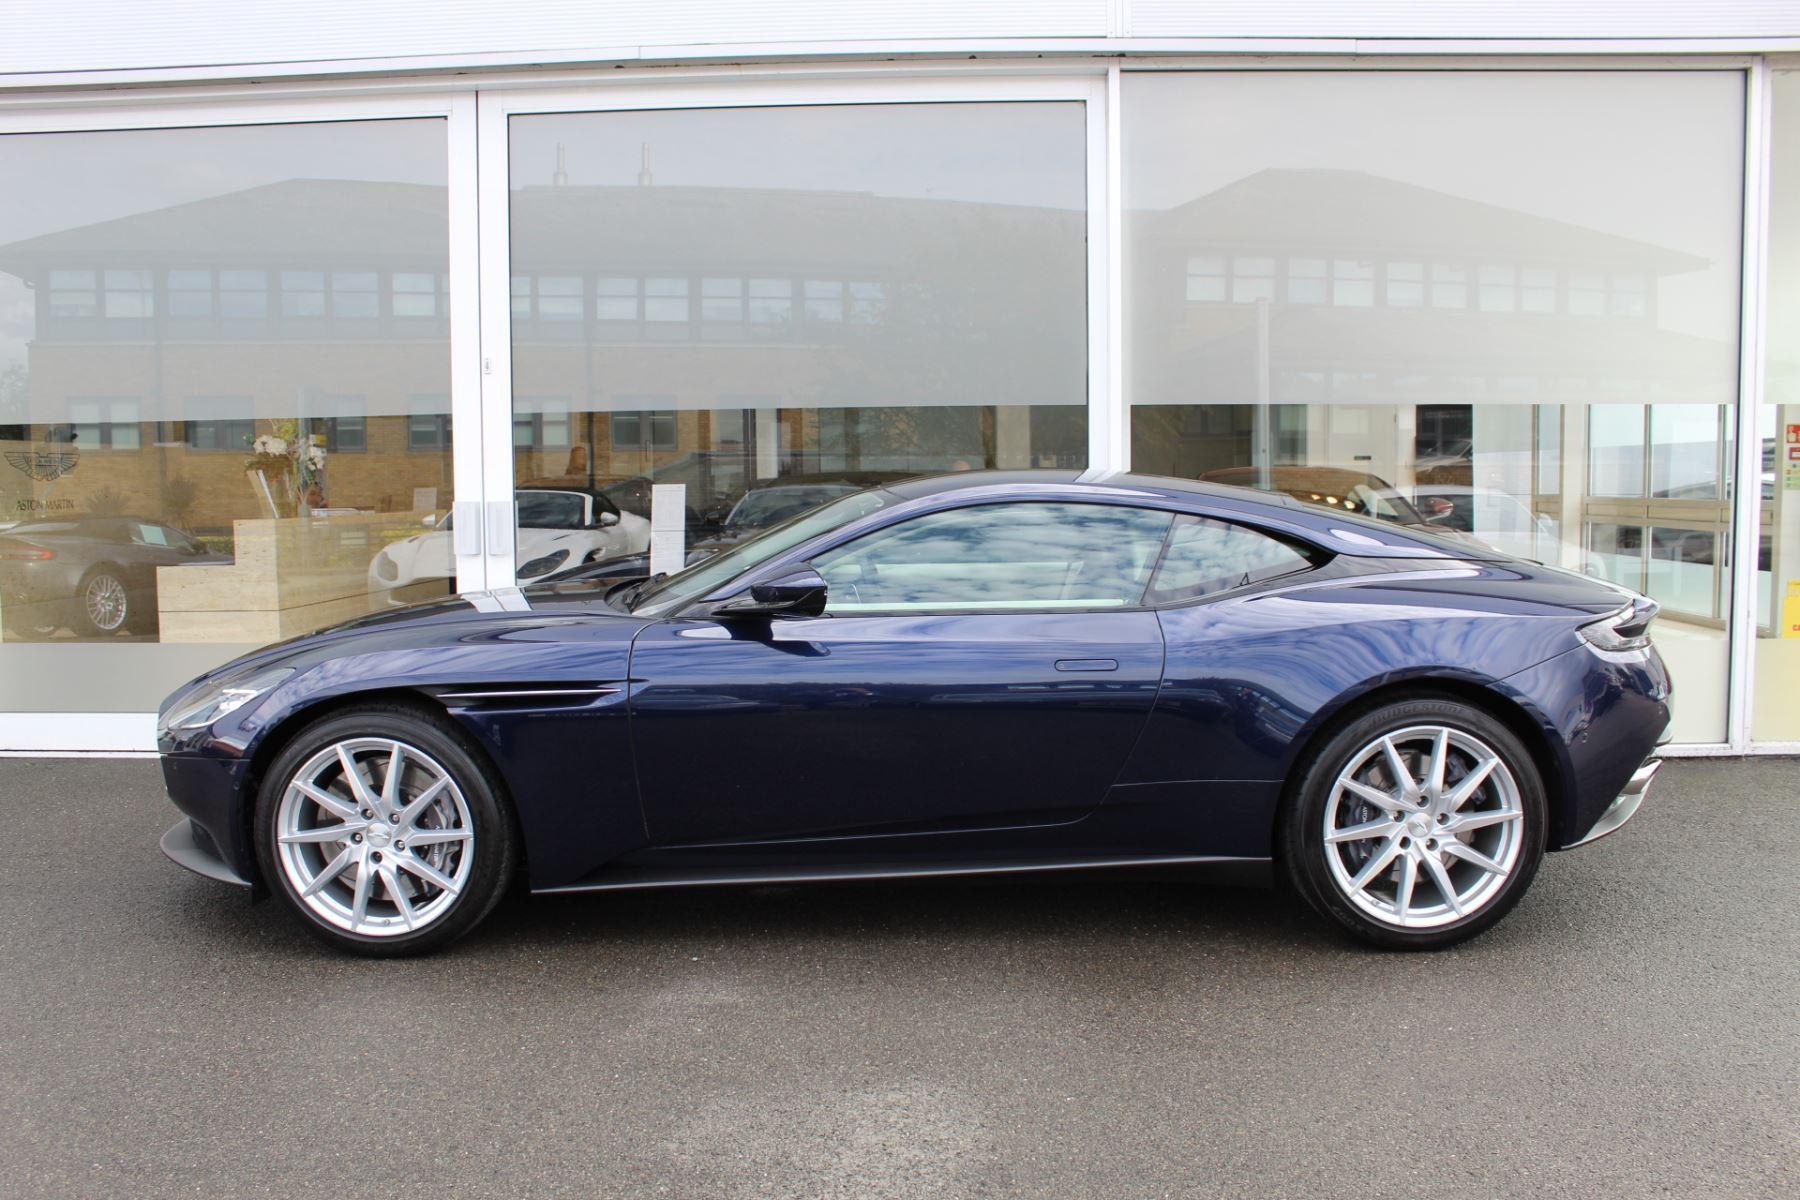 Aston Martin DB11 V8 2dr Touchtronic image 9